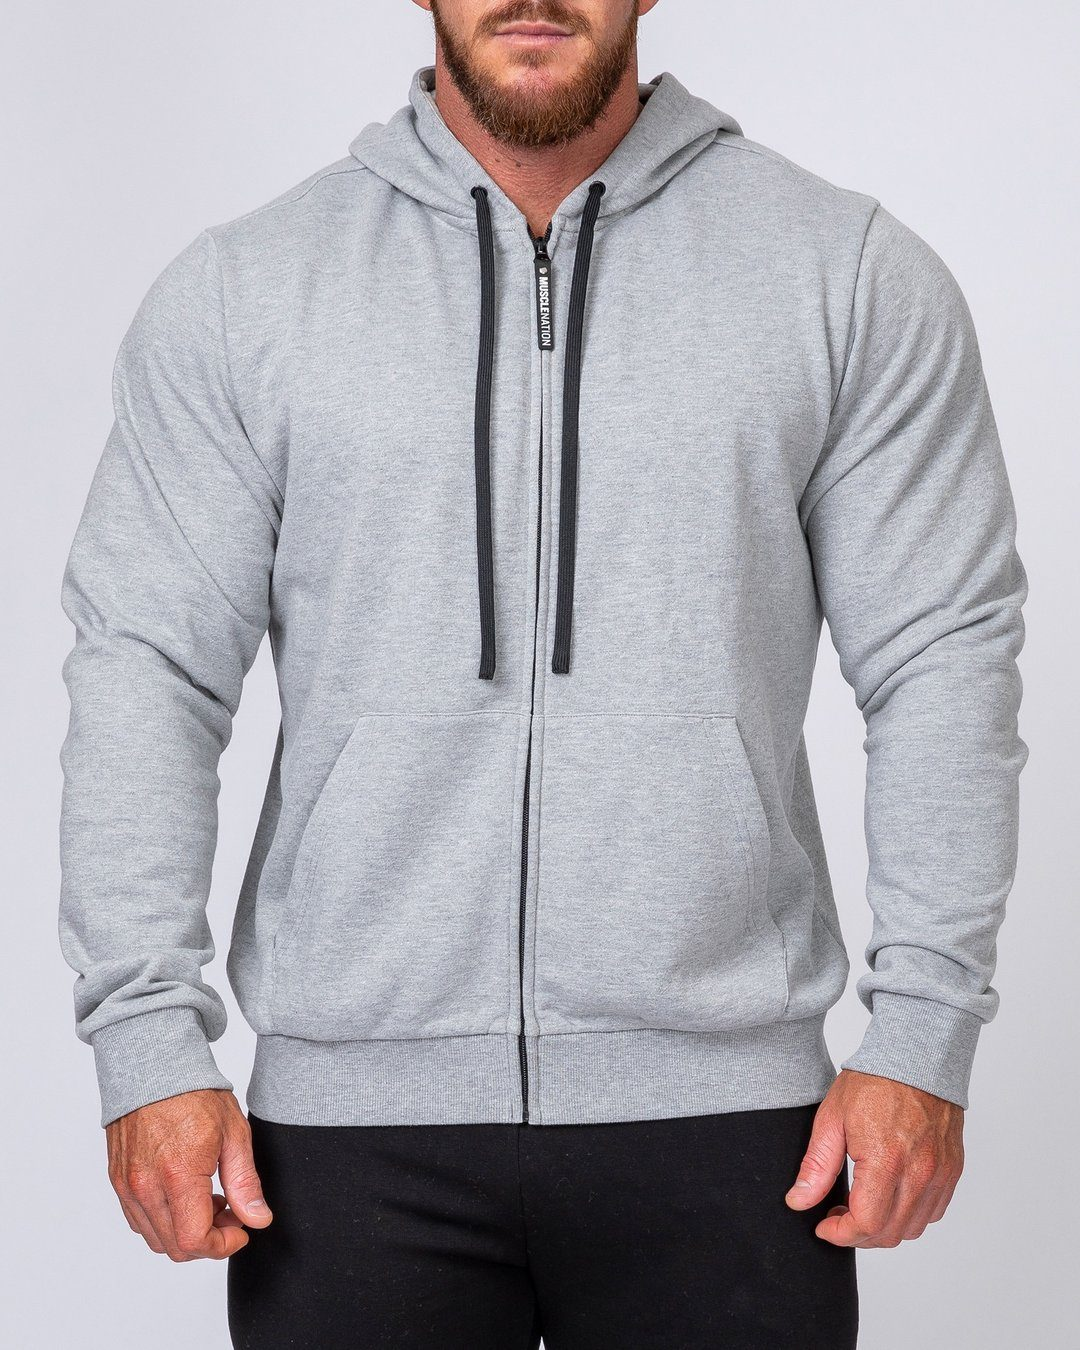 Muscle Nation Mens Zip Up Hoodie - Grey